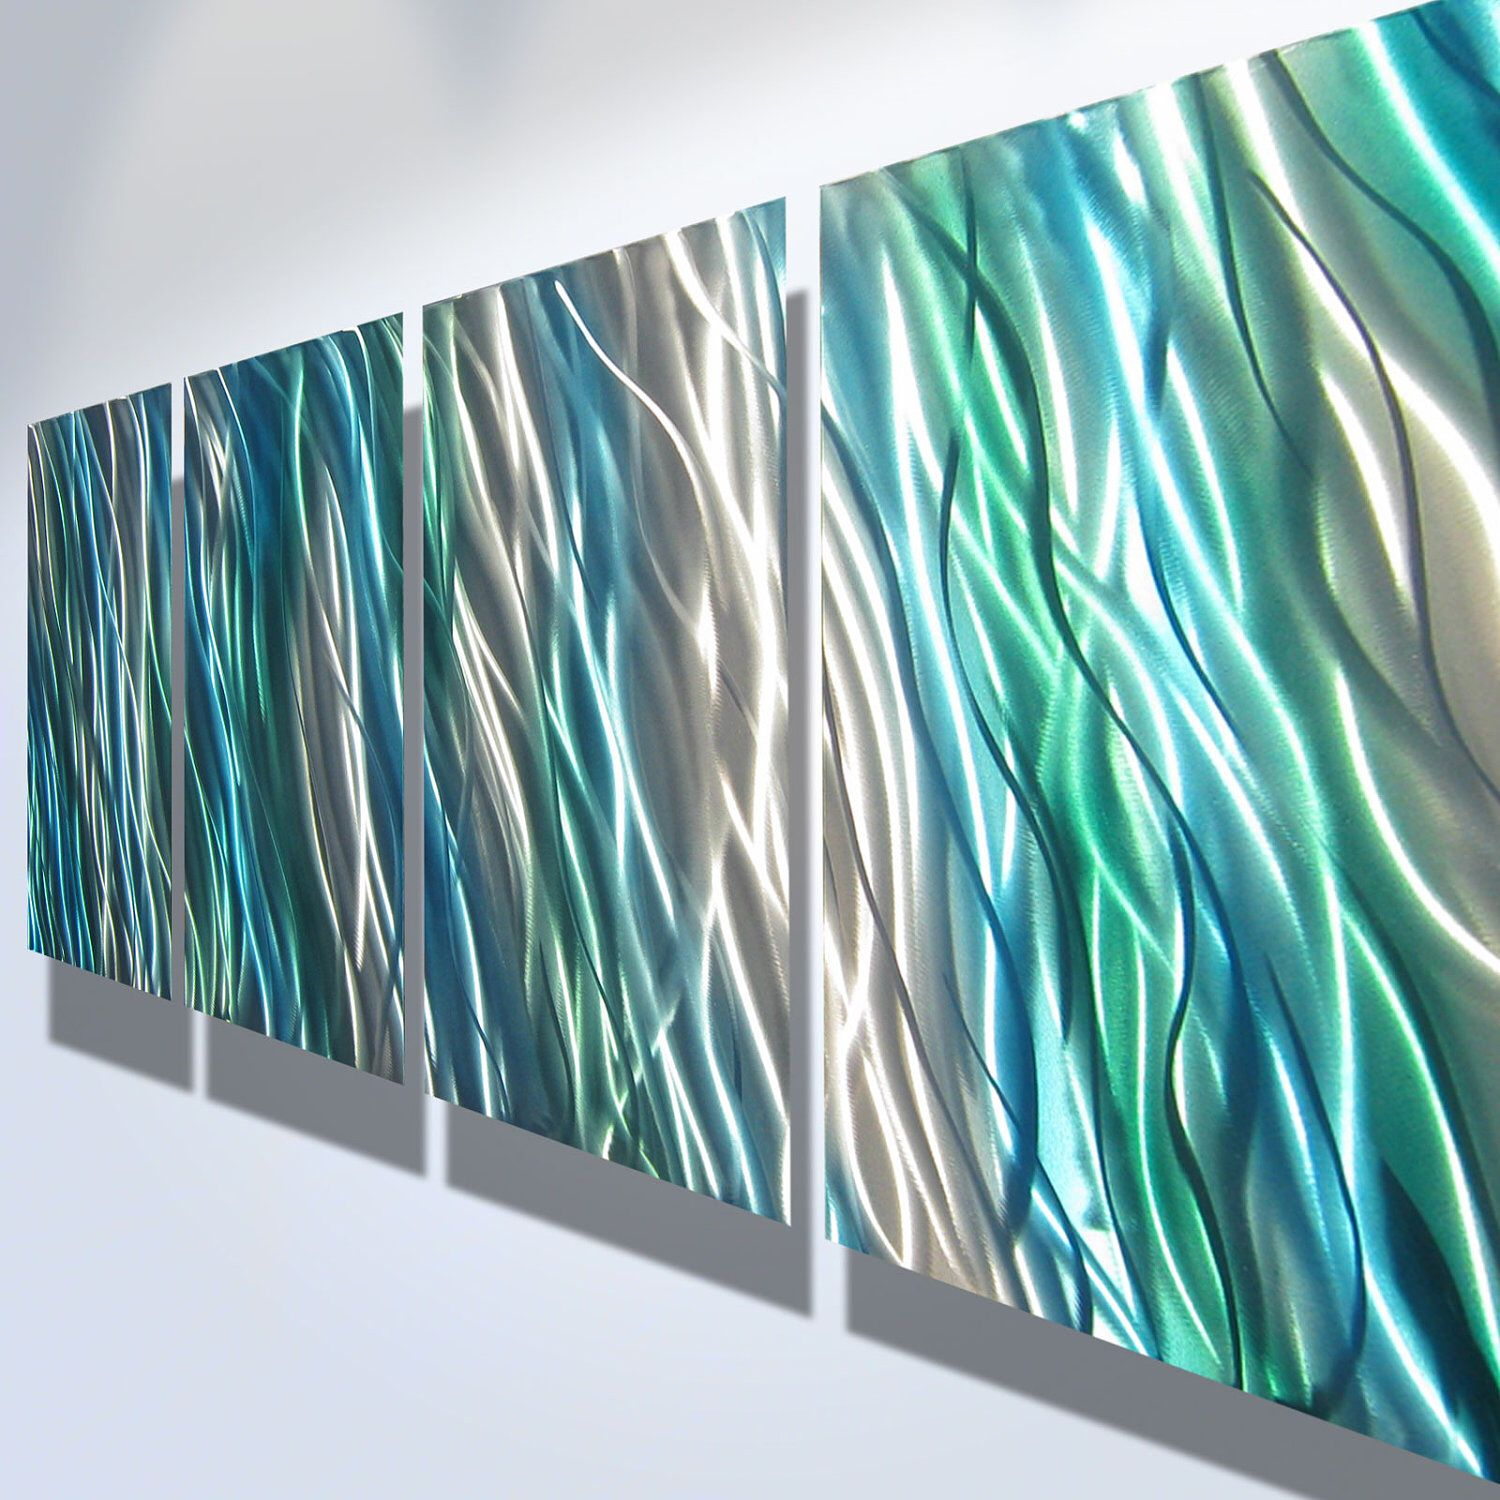 Teal Metal Wall Art Metal Wall Art Decor Abstract Contemporary Modern Sculpture